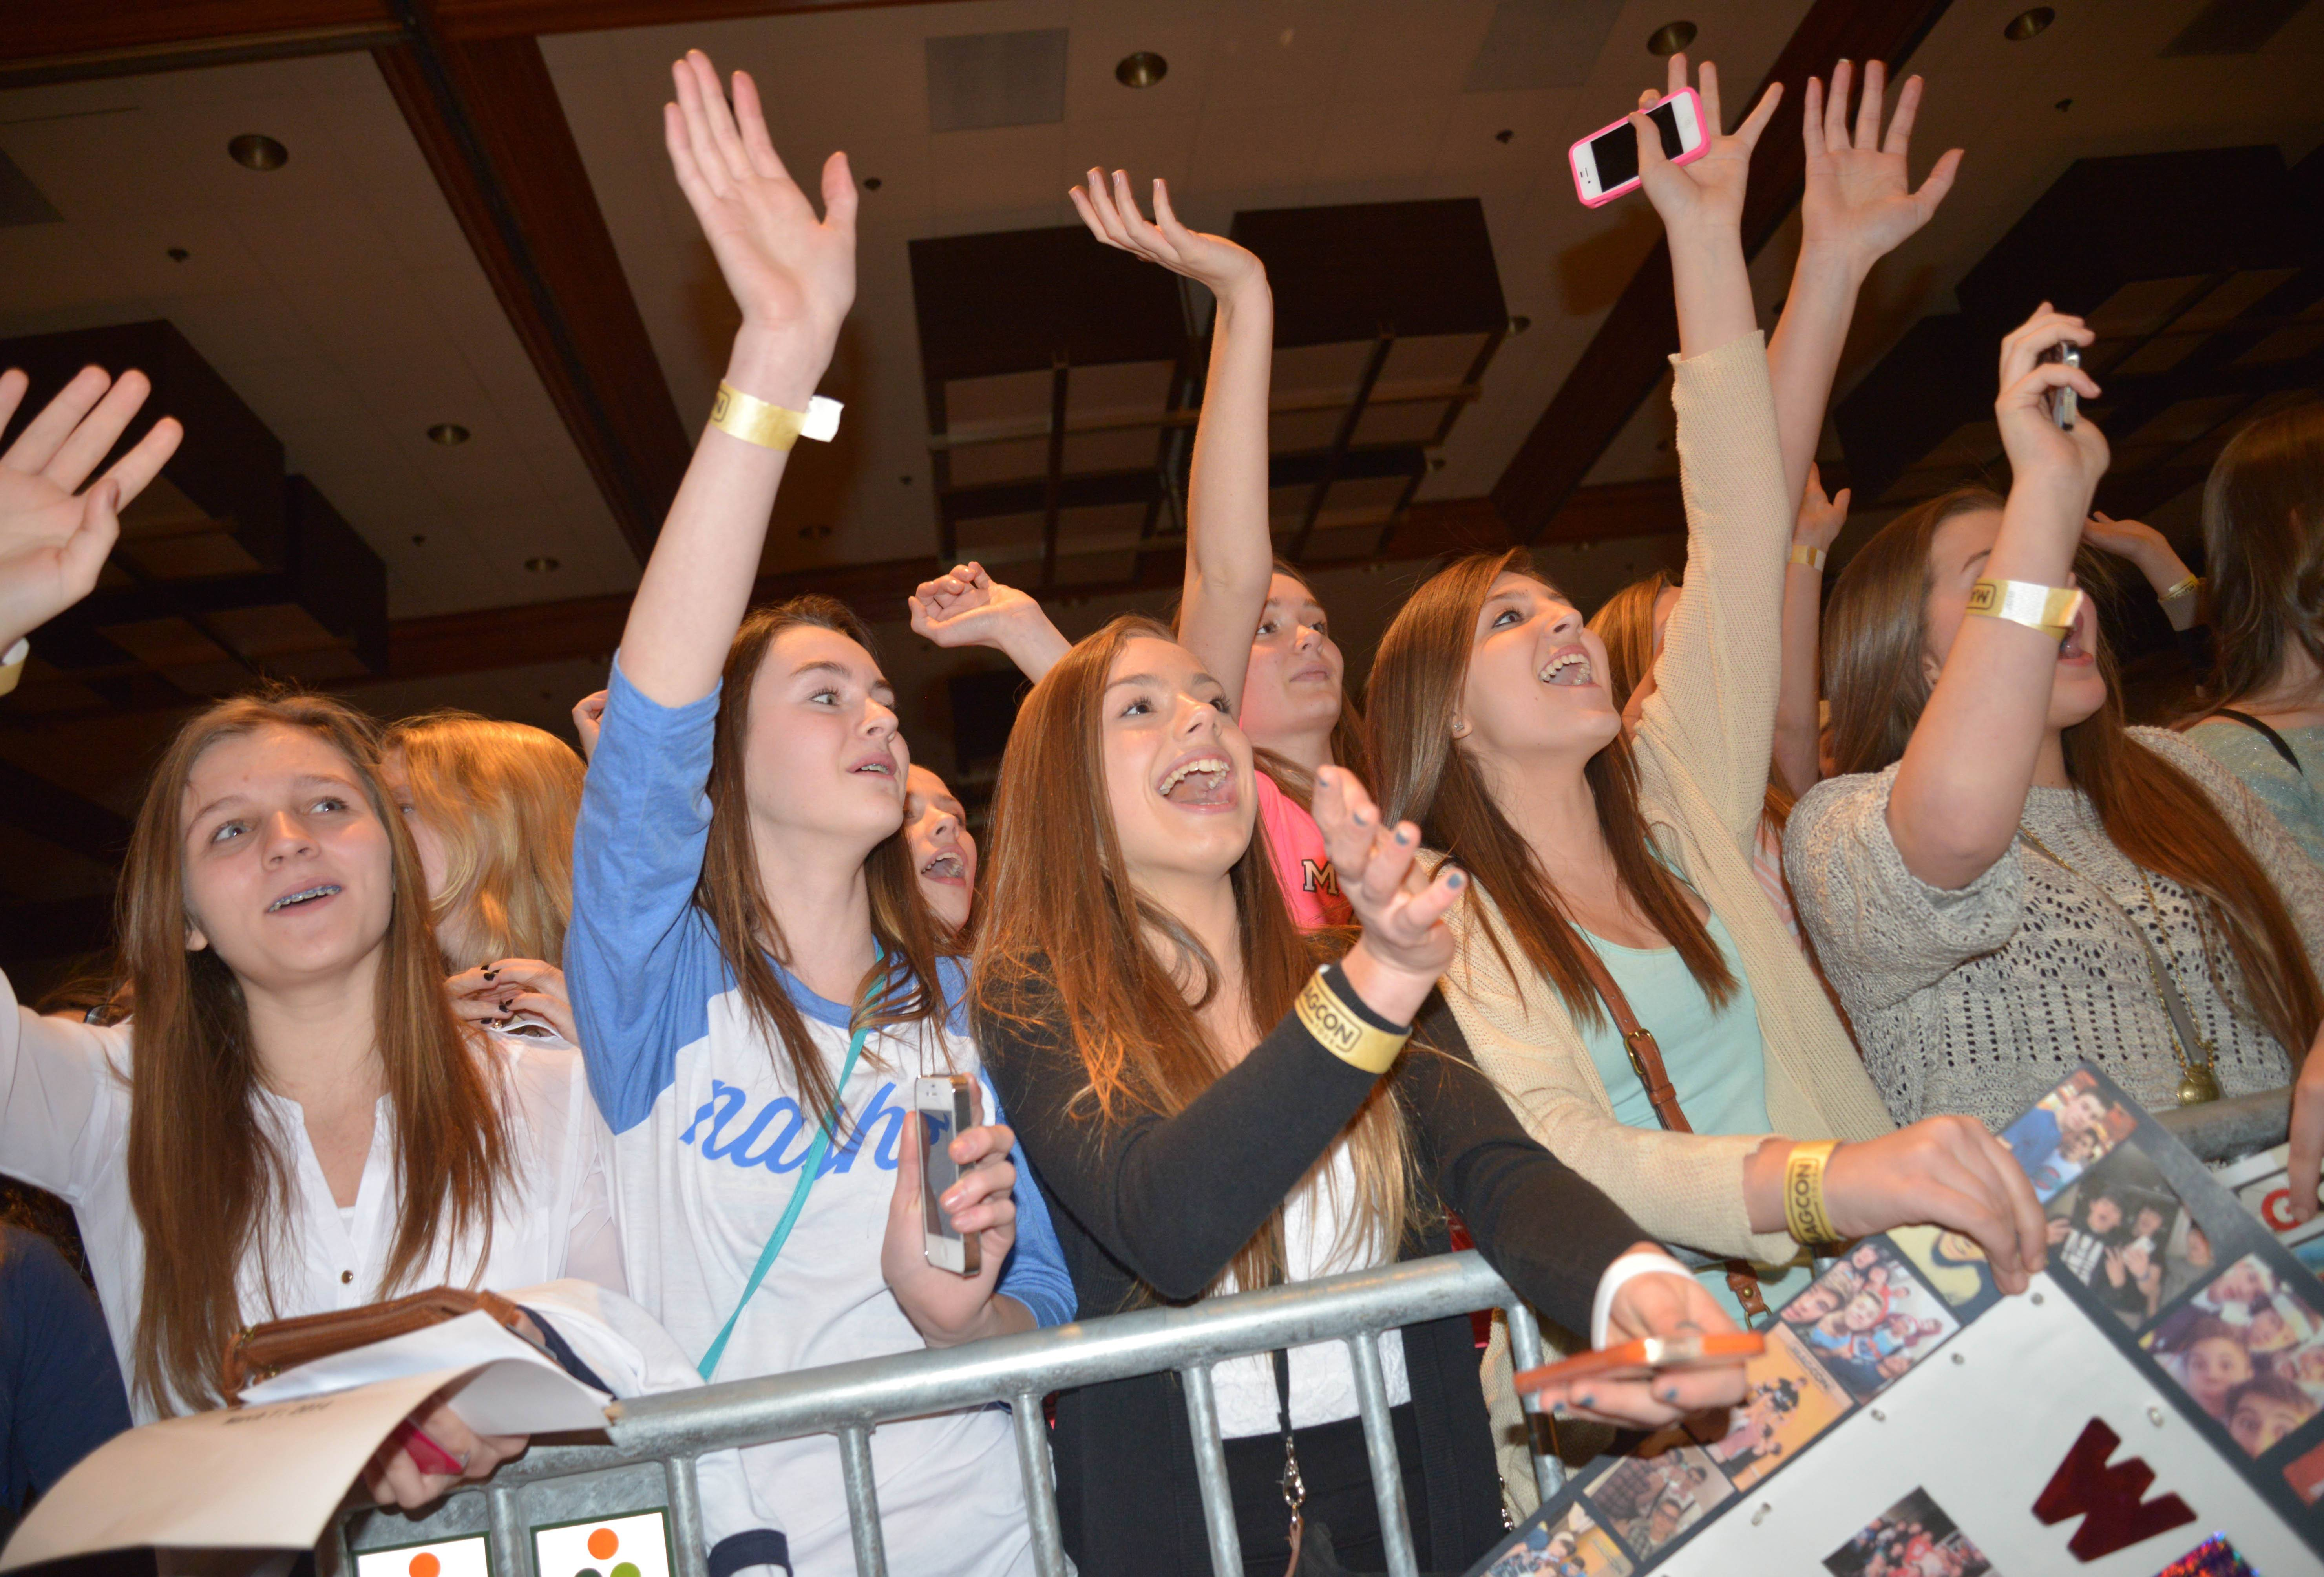 The teenage boys who have become social media stars with their 6-second videos on Vine were at the Westin Chicago in Itasca to meet their fans.